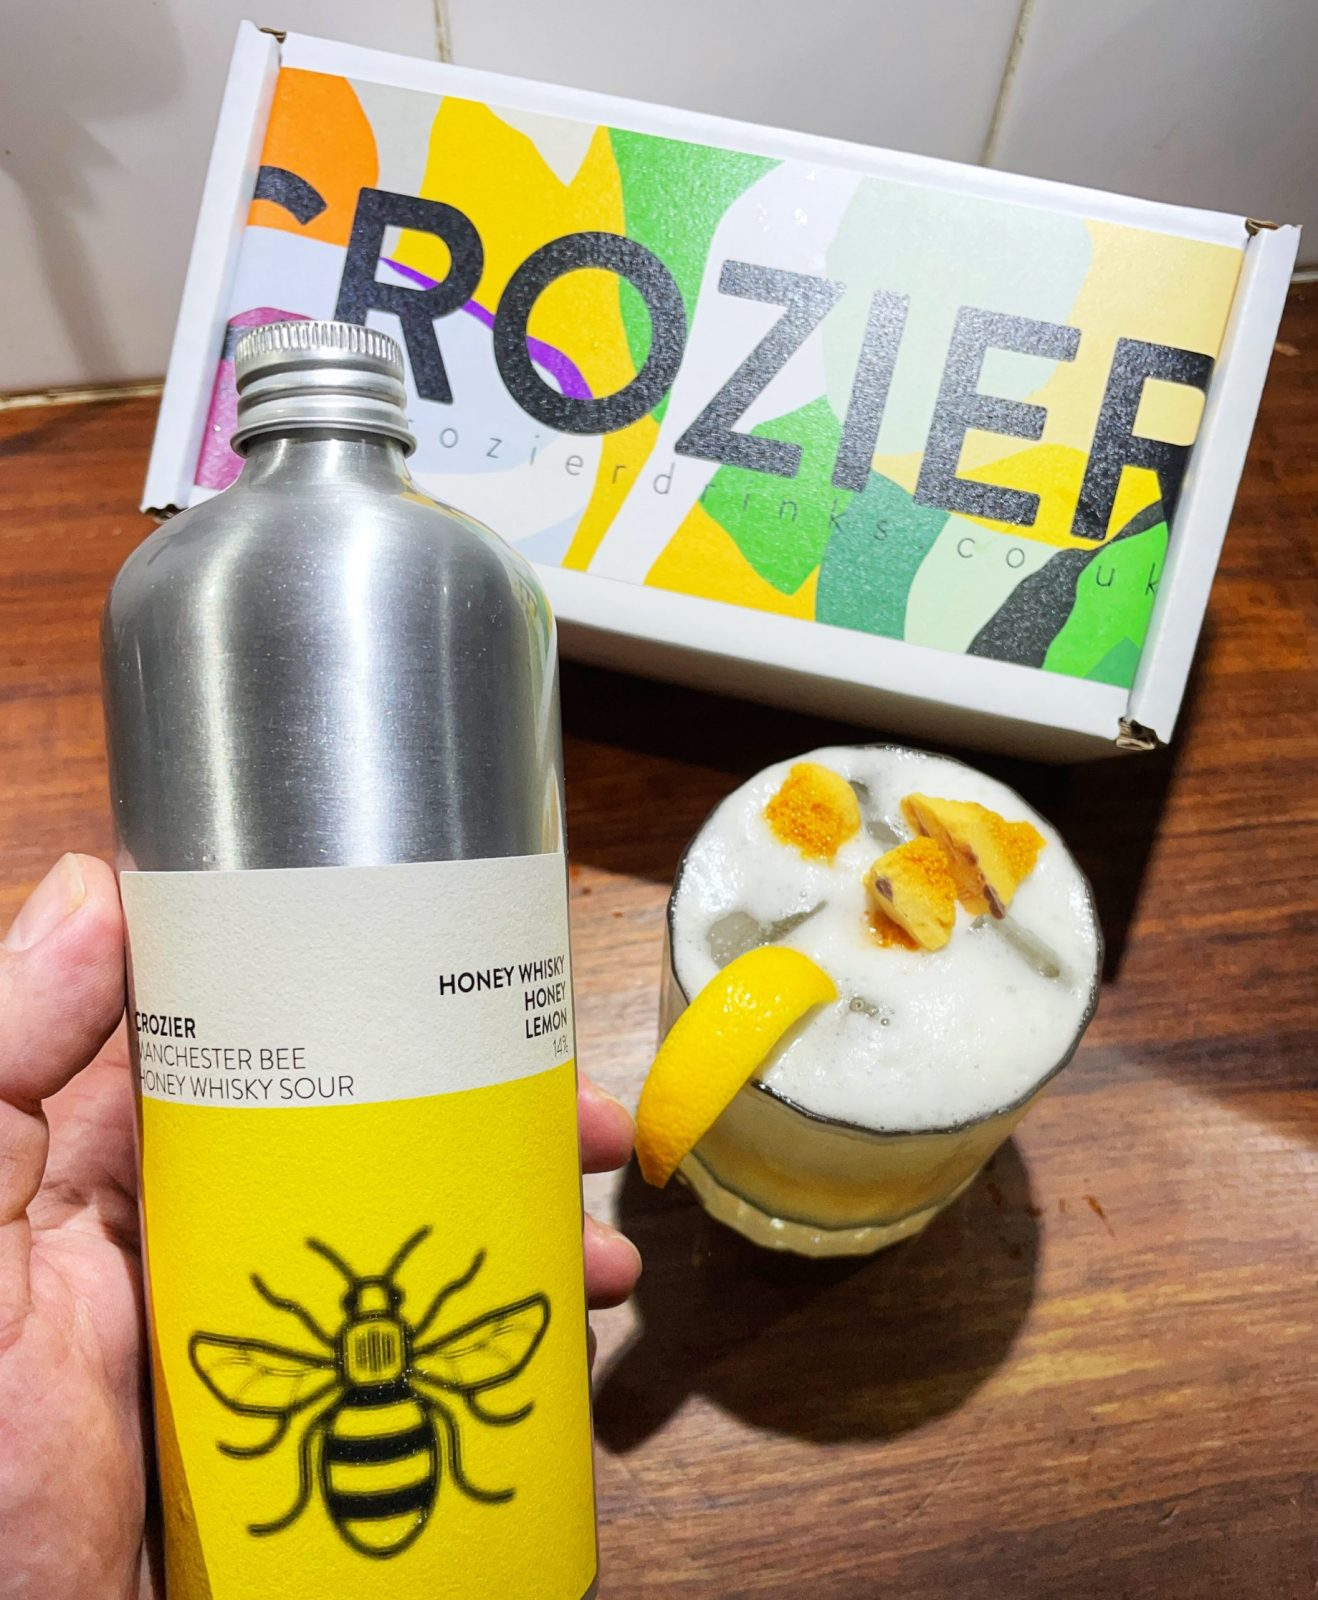 Local drinks company Crozier Drinks launches new 'Manchester Bee' cocktail, The Manc